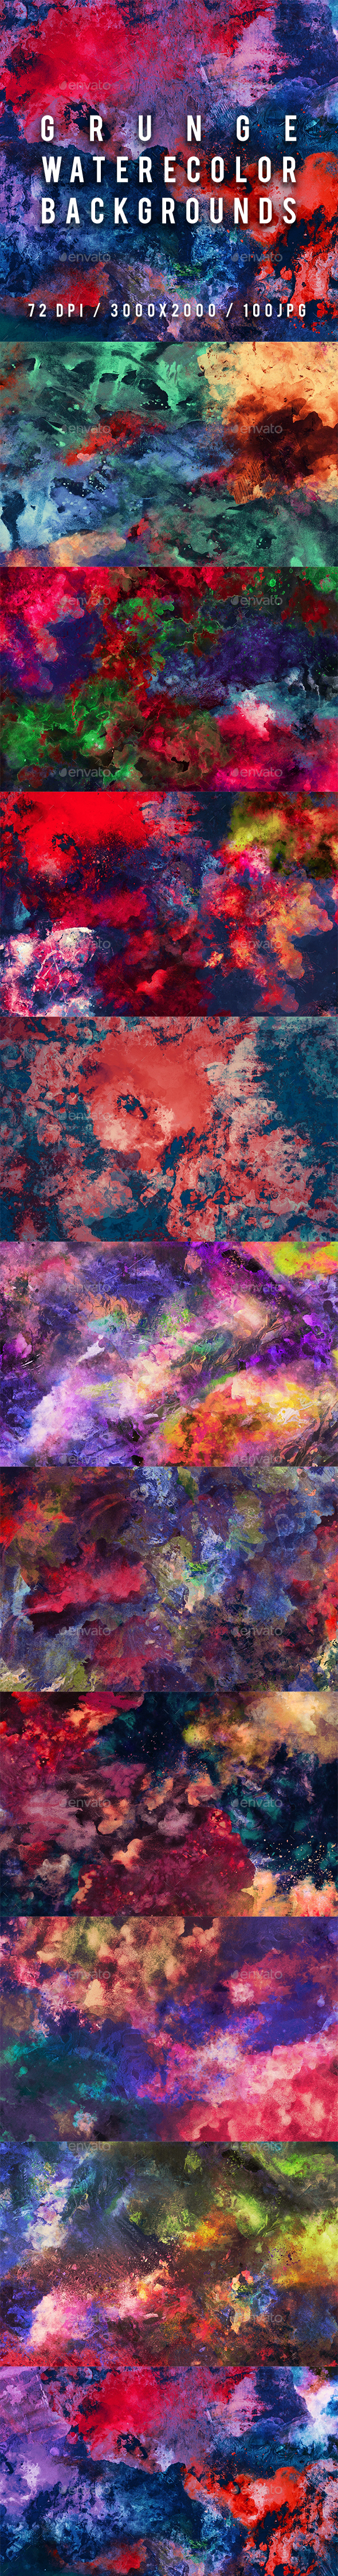 100 Grunge Watercolor Backgrounds - Abstract Backgrounds